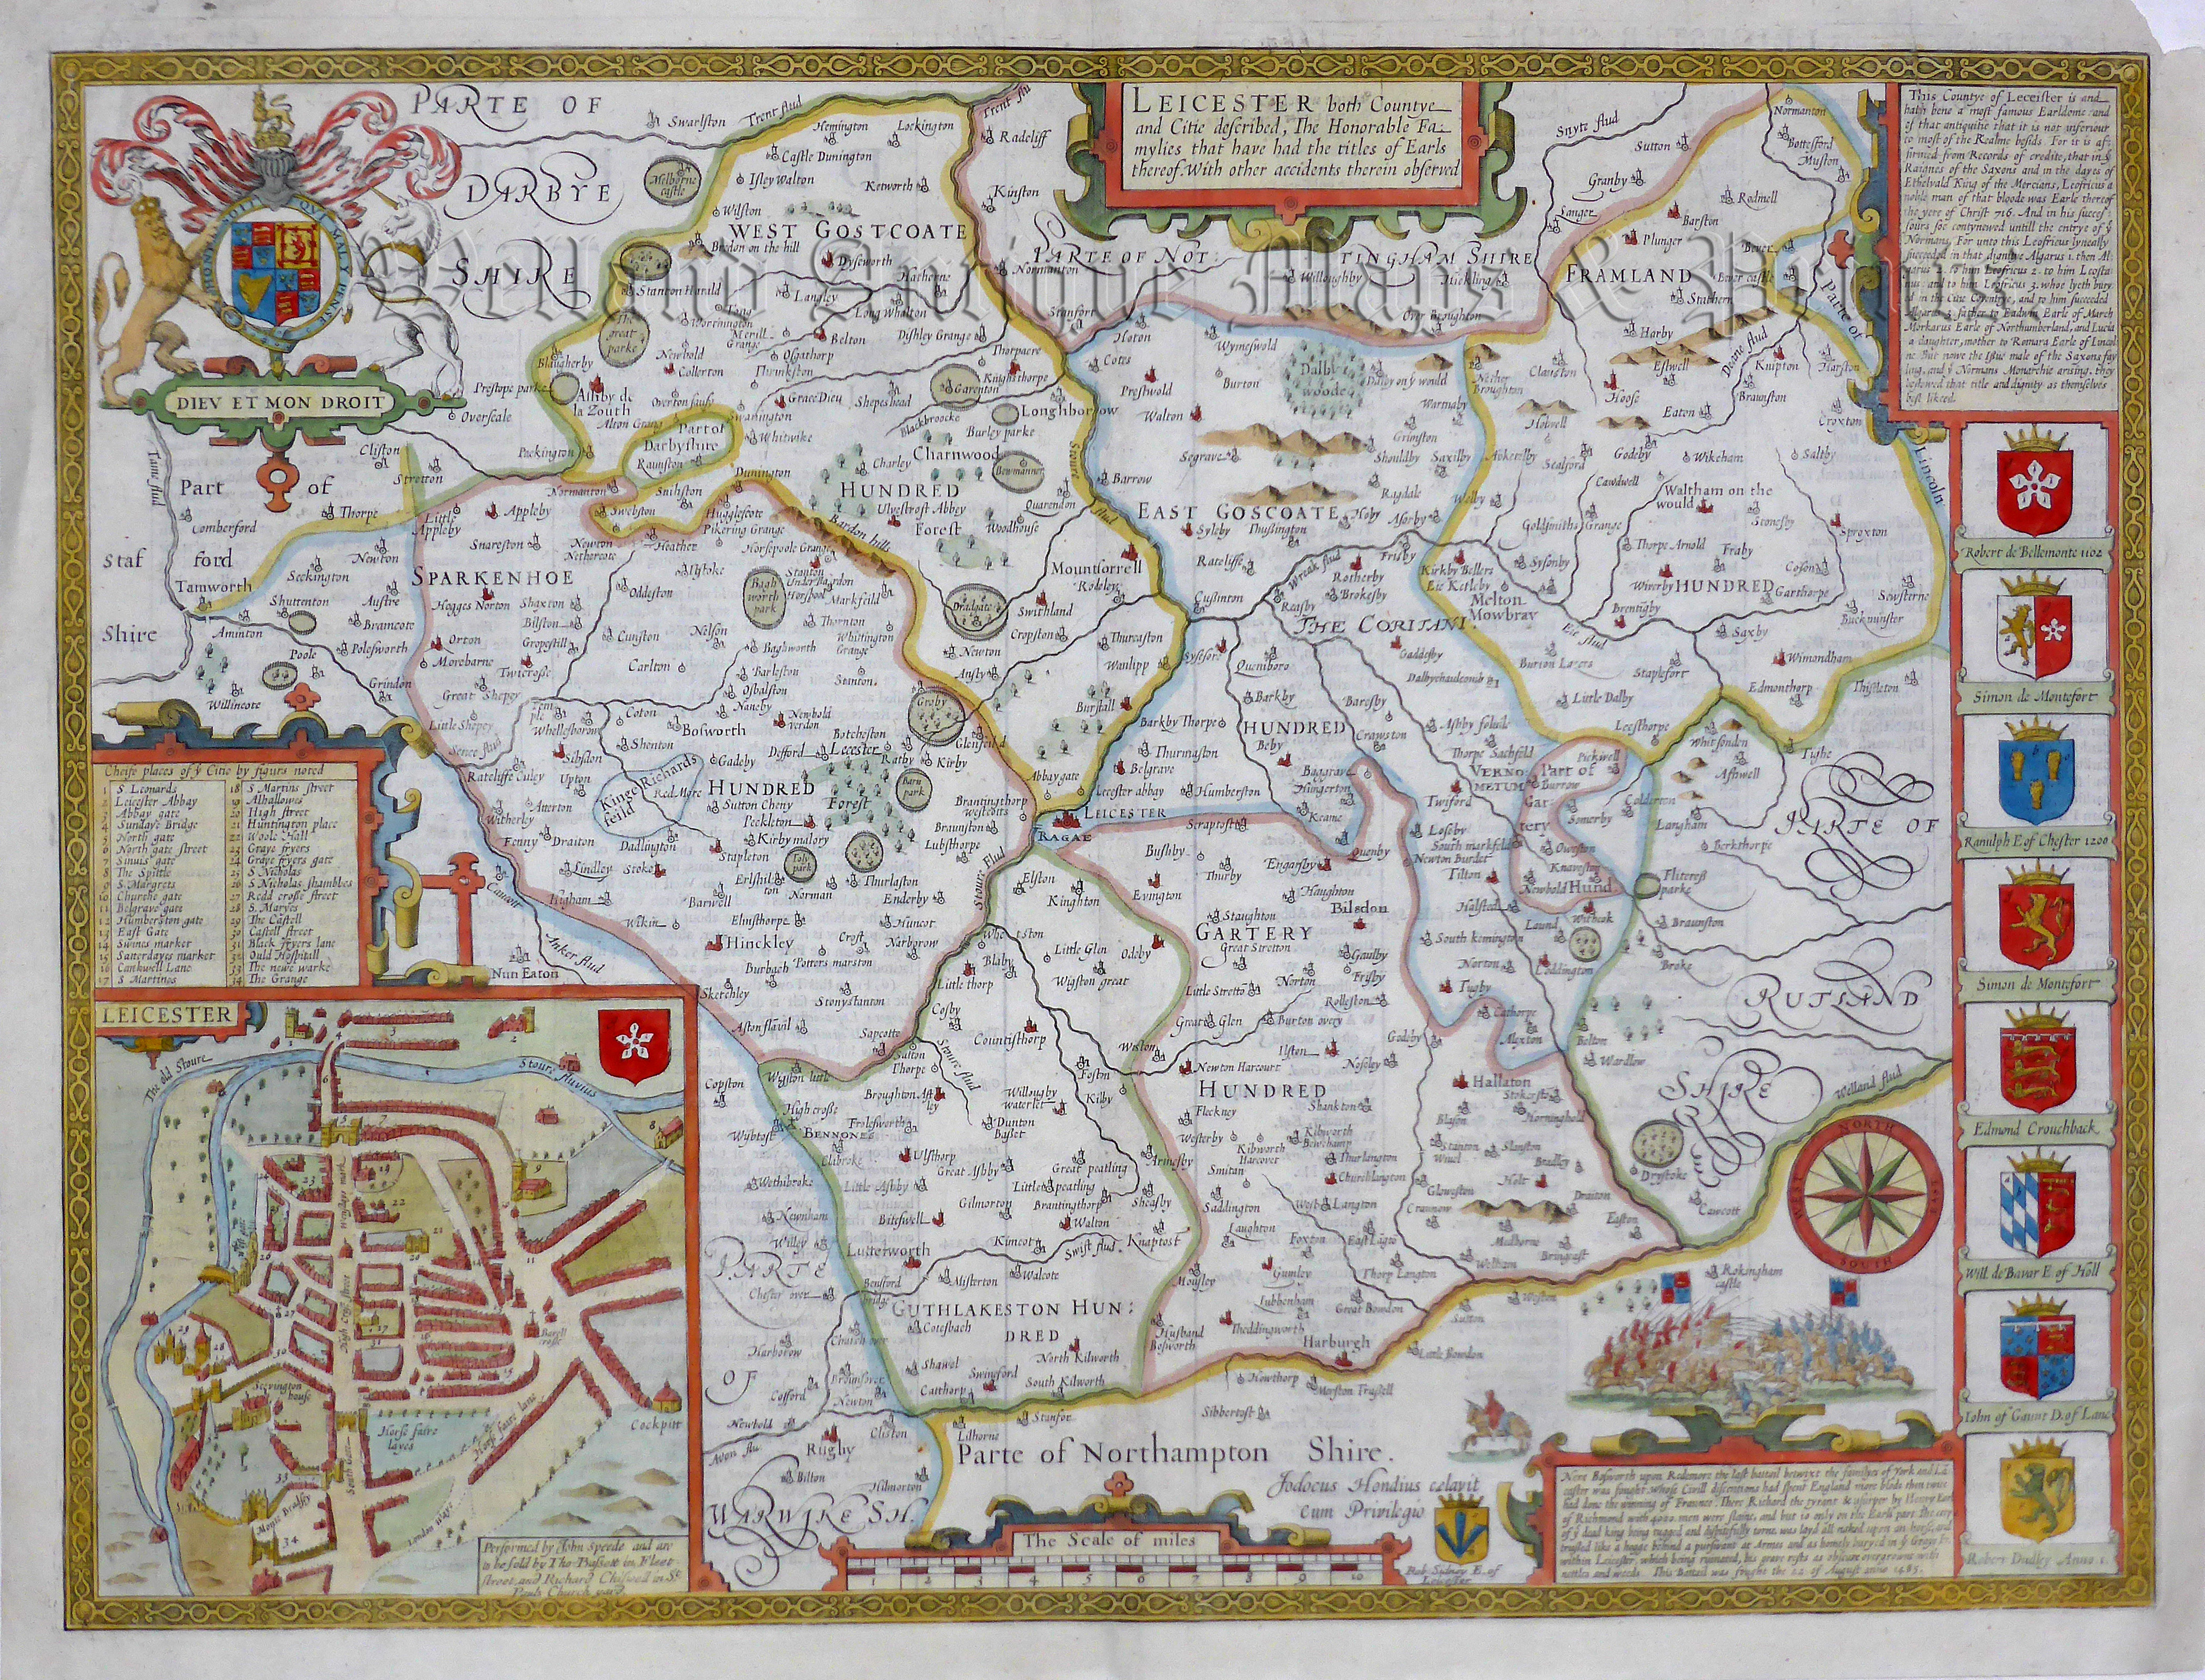 Leicestershire Uk Map.Leicester Both Countye And Citie Described Leicestershire By